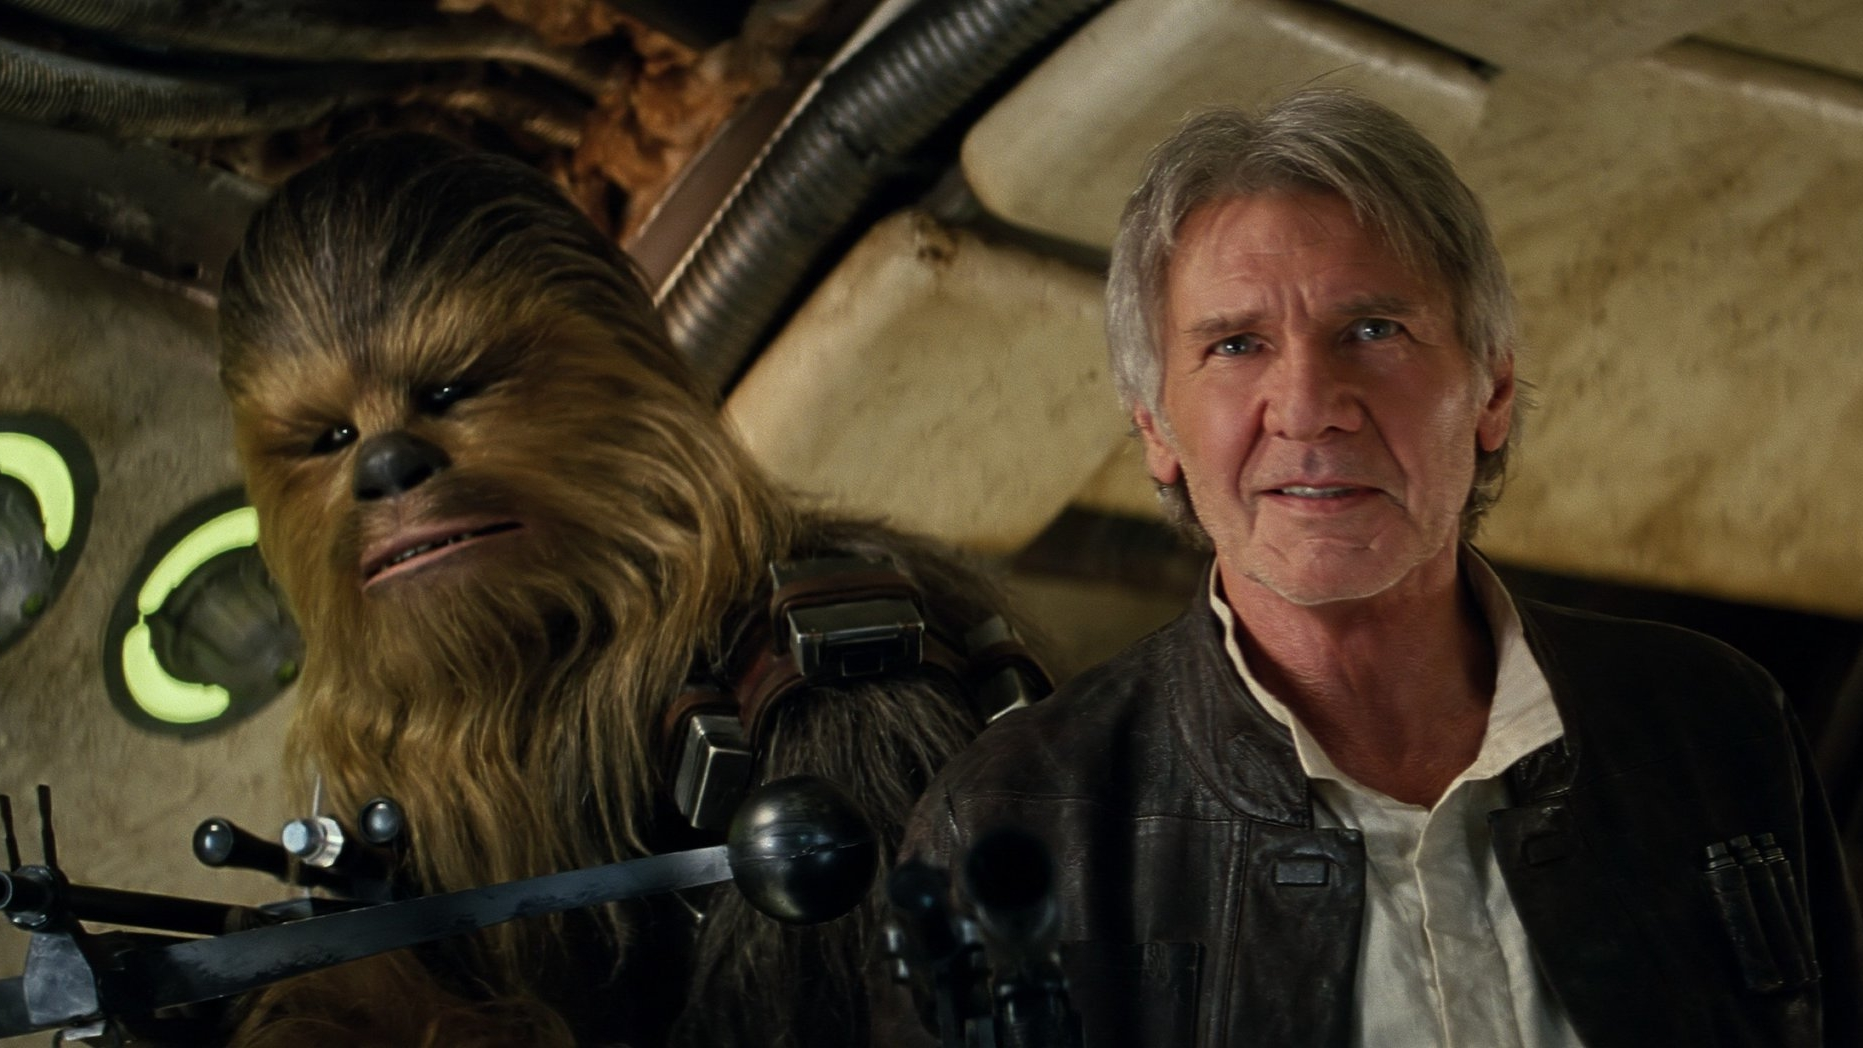 peter mayhew, harrison ford, the force awakens,